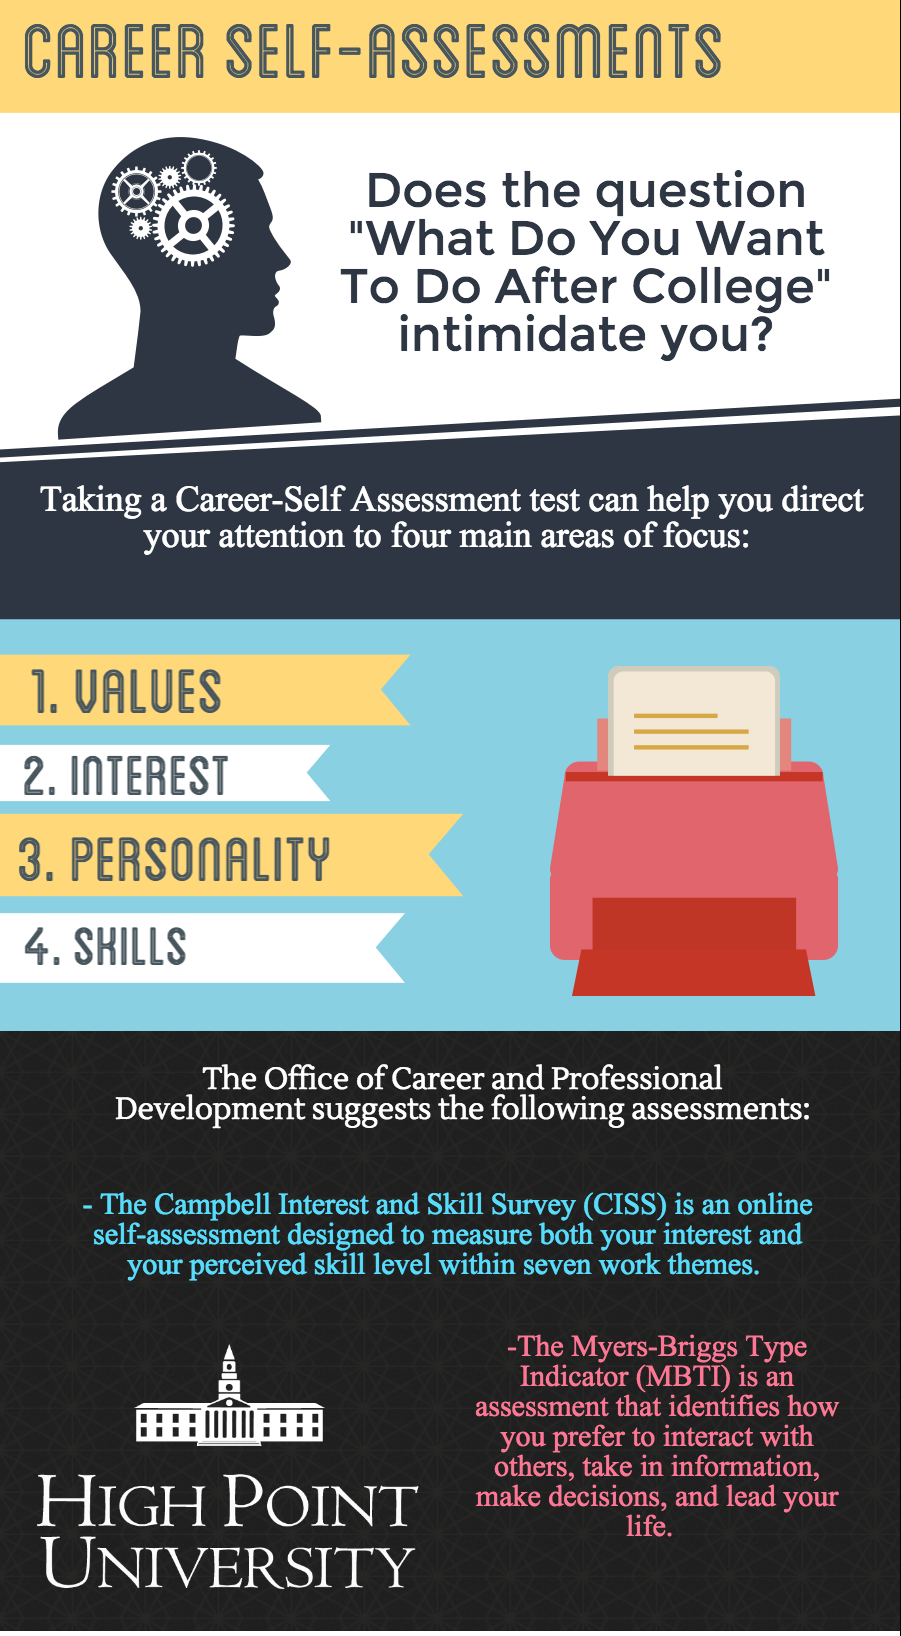 infographic career self assessments high point university career self assessment final 1